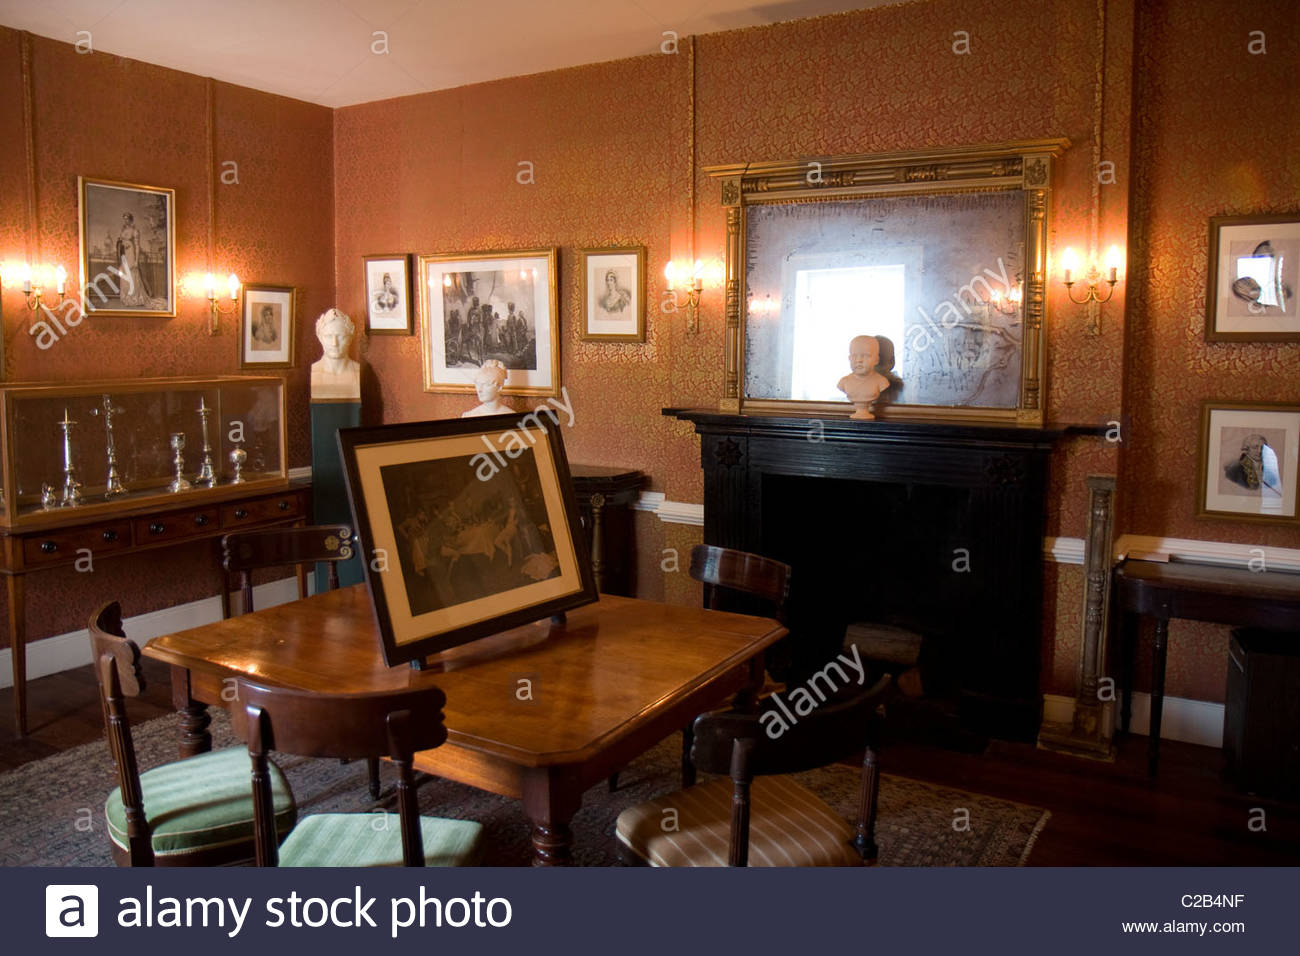 A room in Longwood House, where Napoleon was in exile until his death. Stock Photo